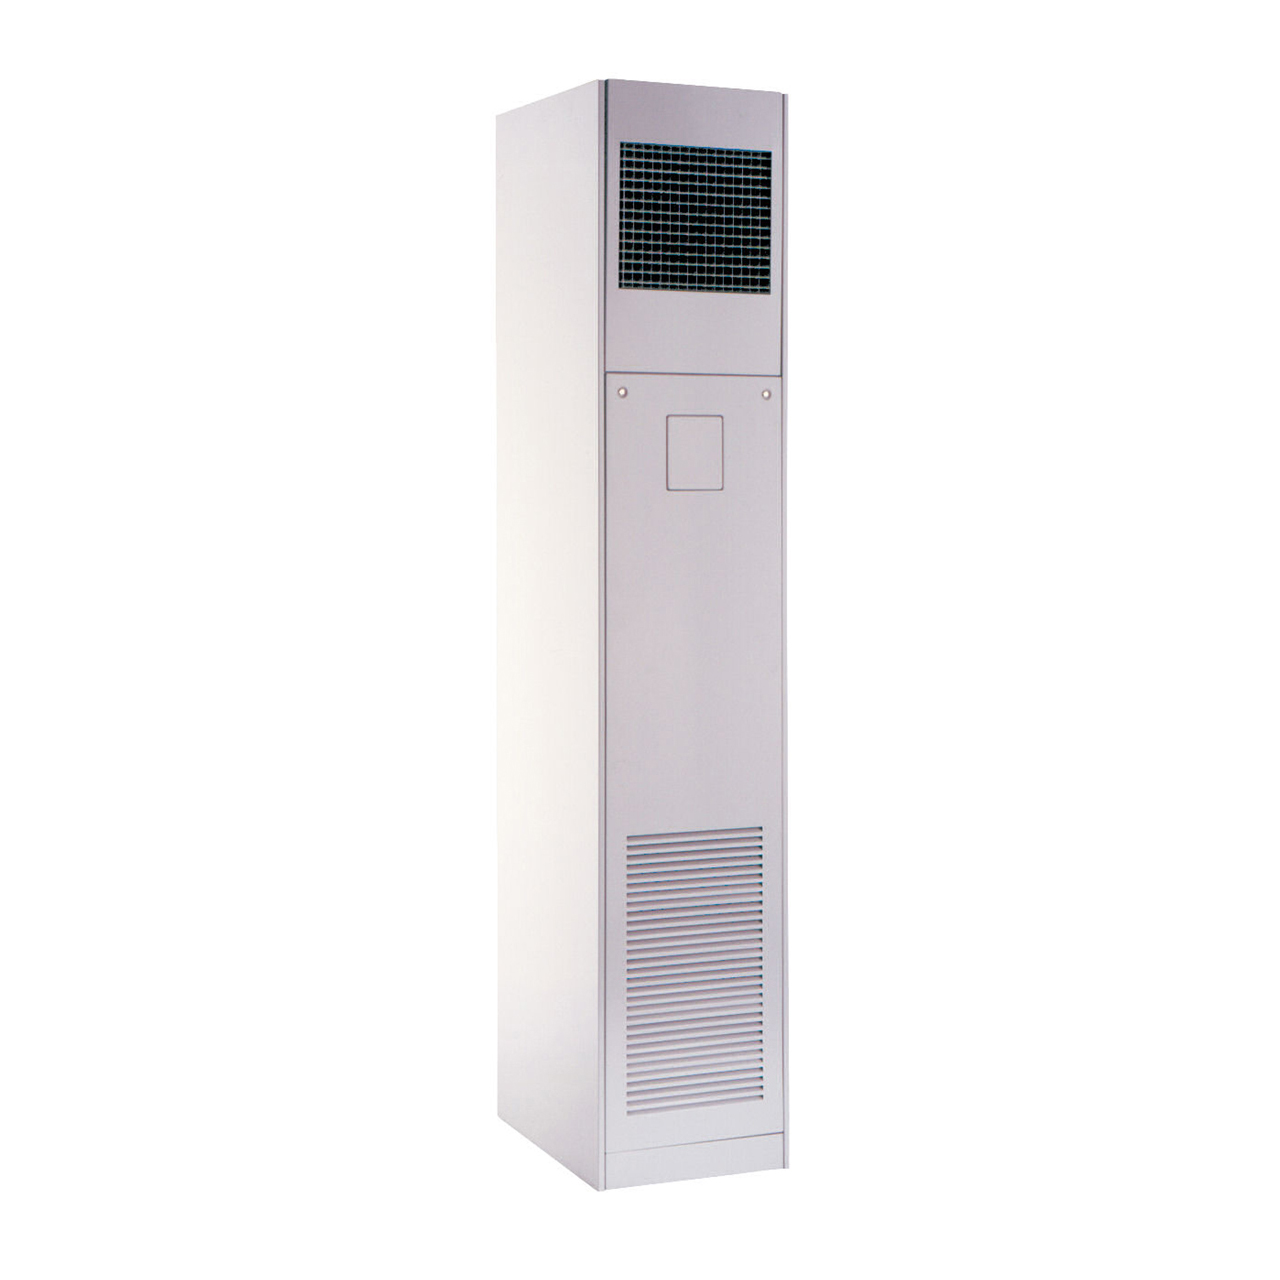 carrier-42SG-furred-in-stack-fan-coil